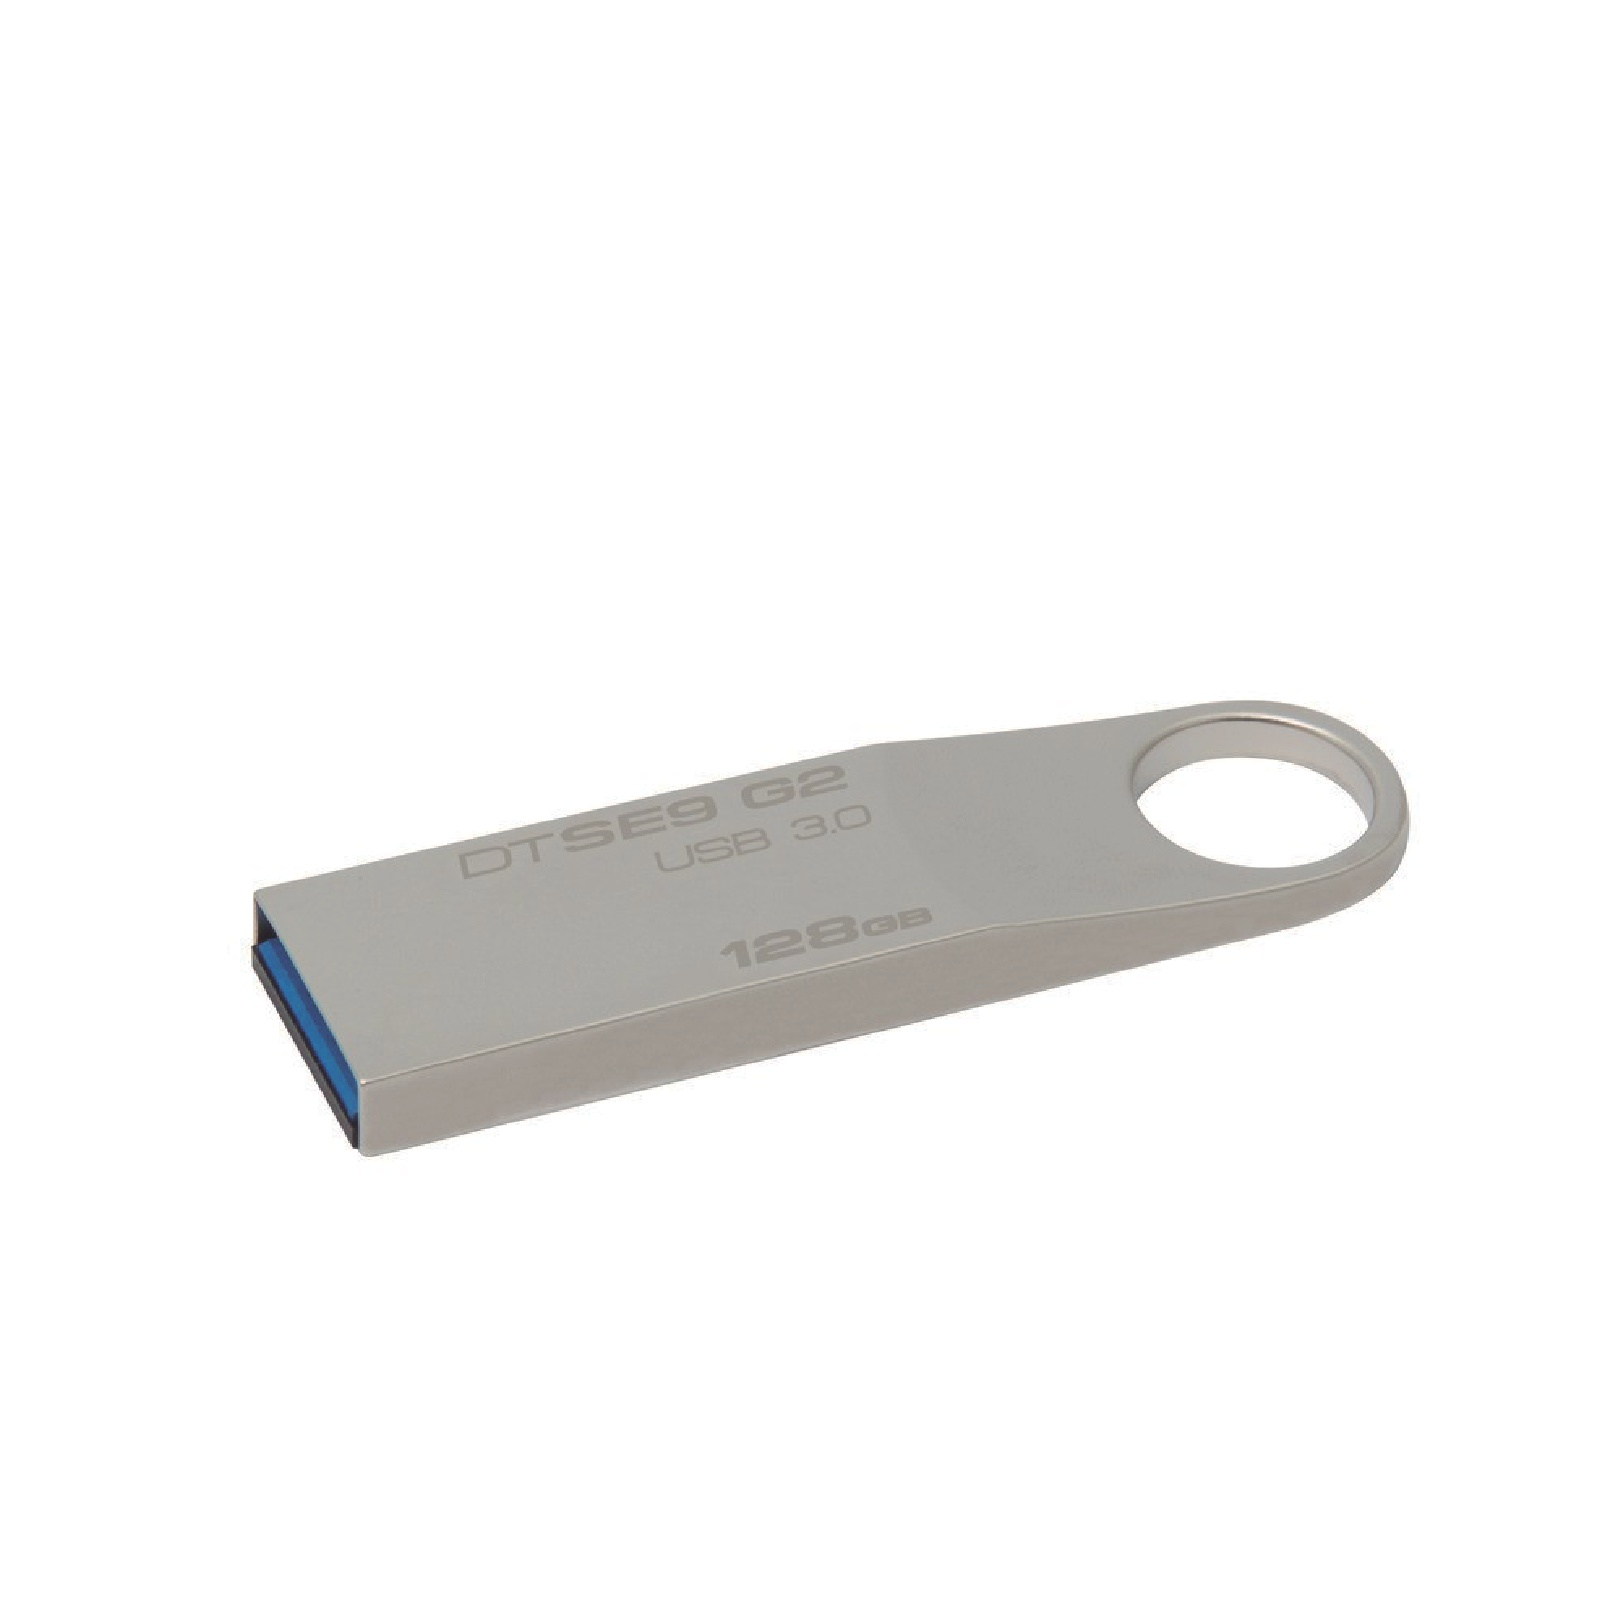 Usb 128GB Kingston Dtse9g2